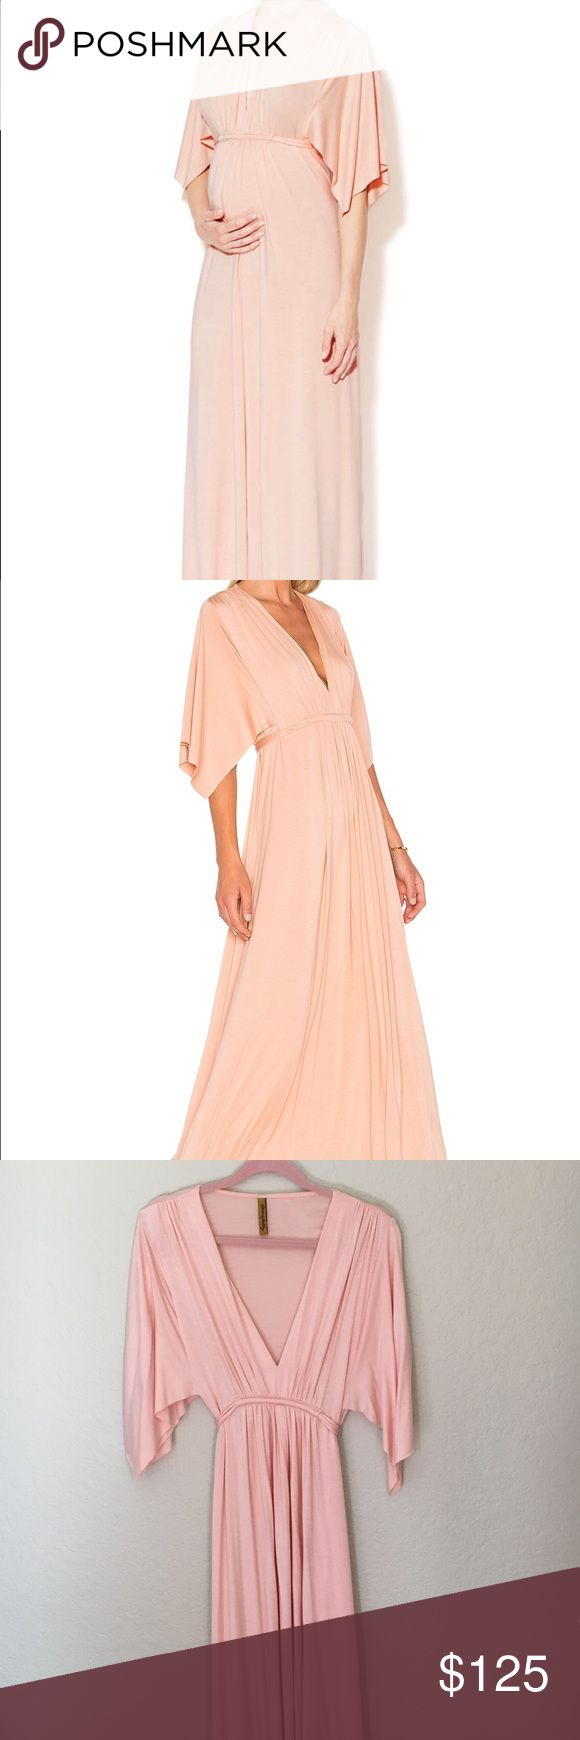 """Rachel Pally dress Rachel Jersey knit caftan dress in Rosewater. Like new, worn once for maternity pictures. A celeb favorite. The length was cut down, it is 55.5"""" shoulder to hem. 92% modal, 2% spandex. So soft and comfortable! Rachel Pally Dresses Maxi"""